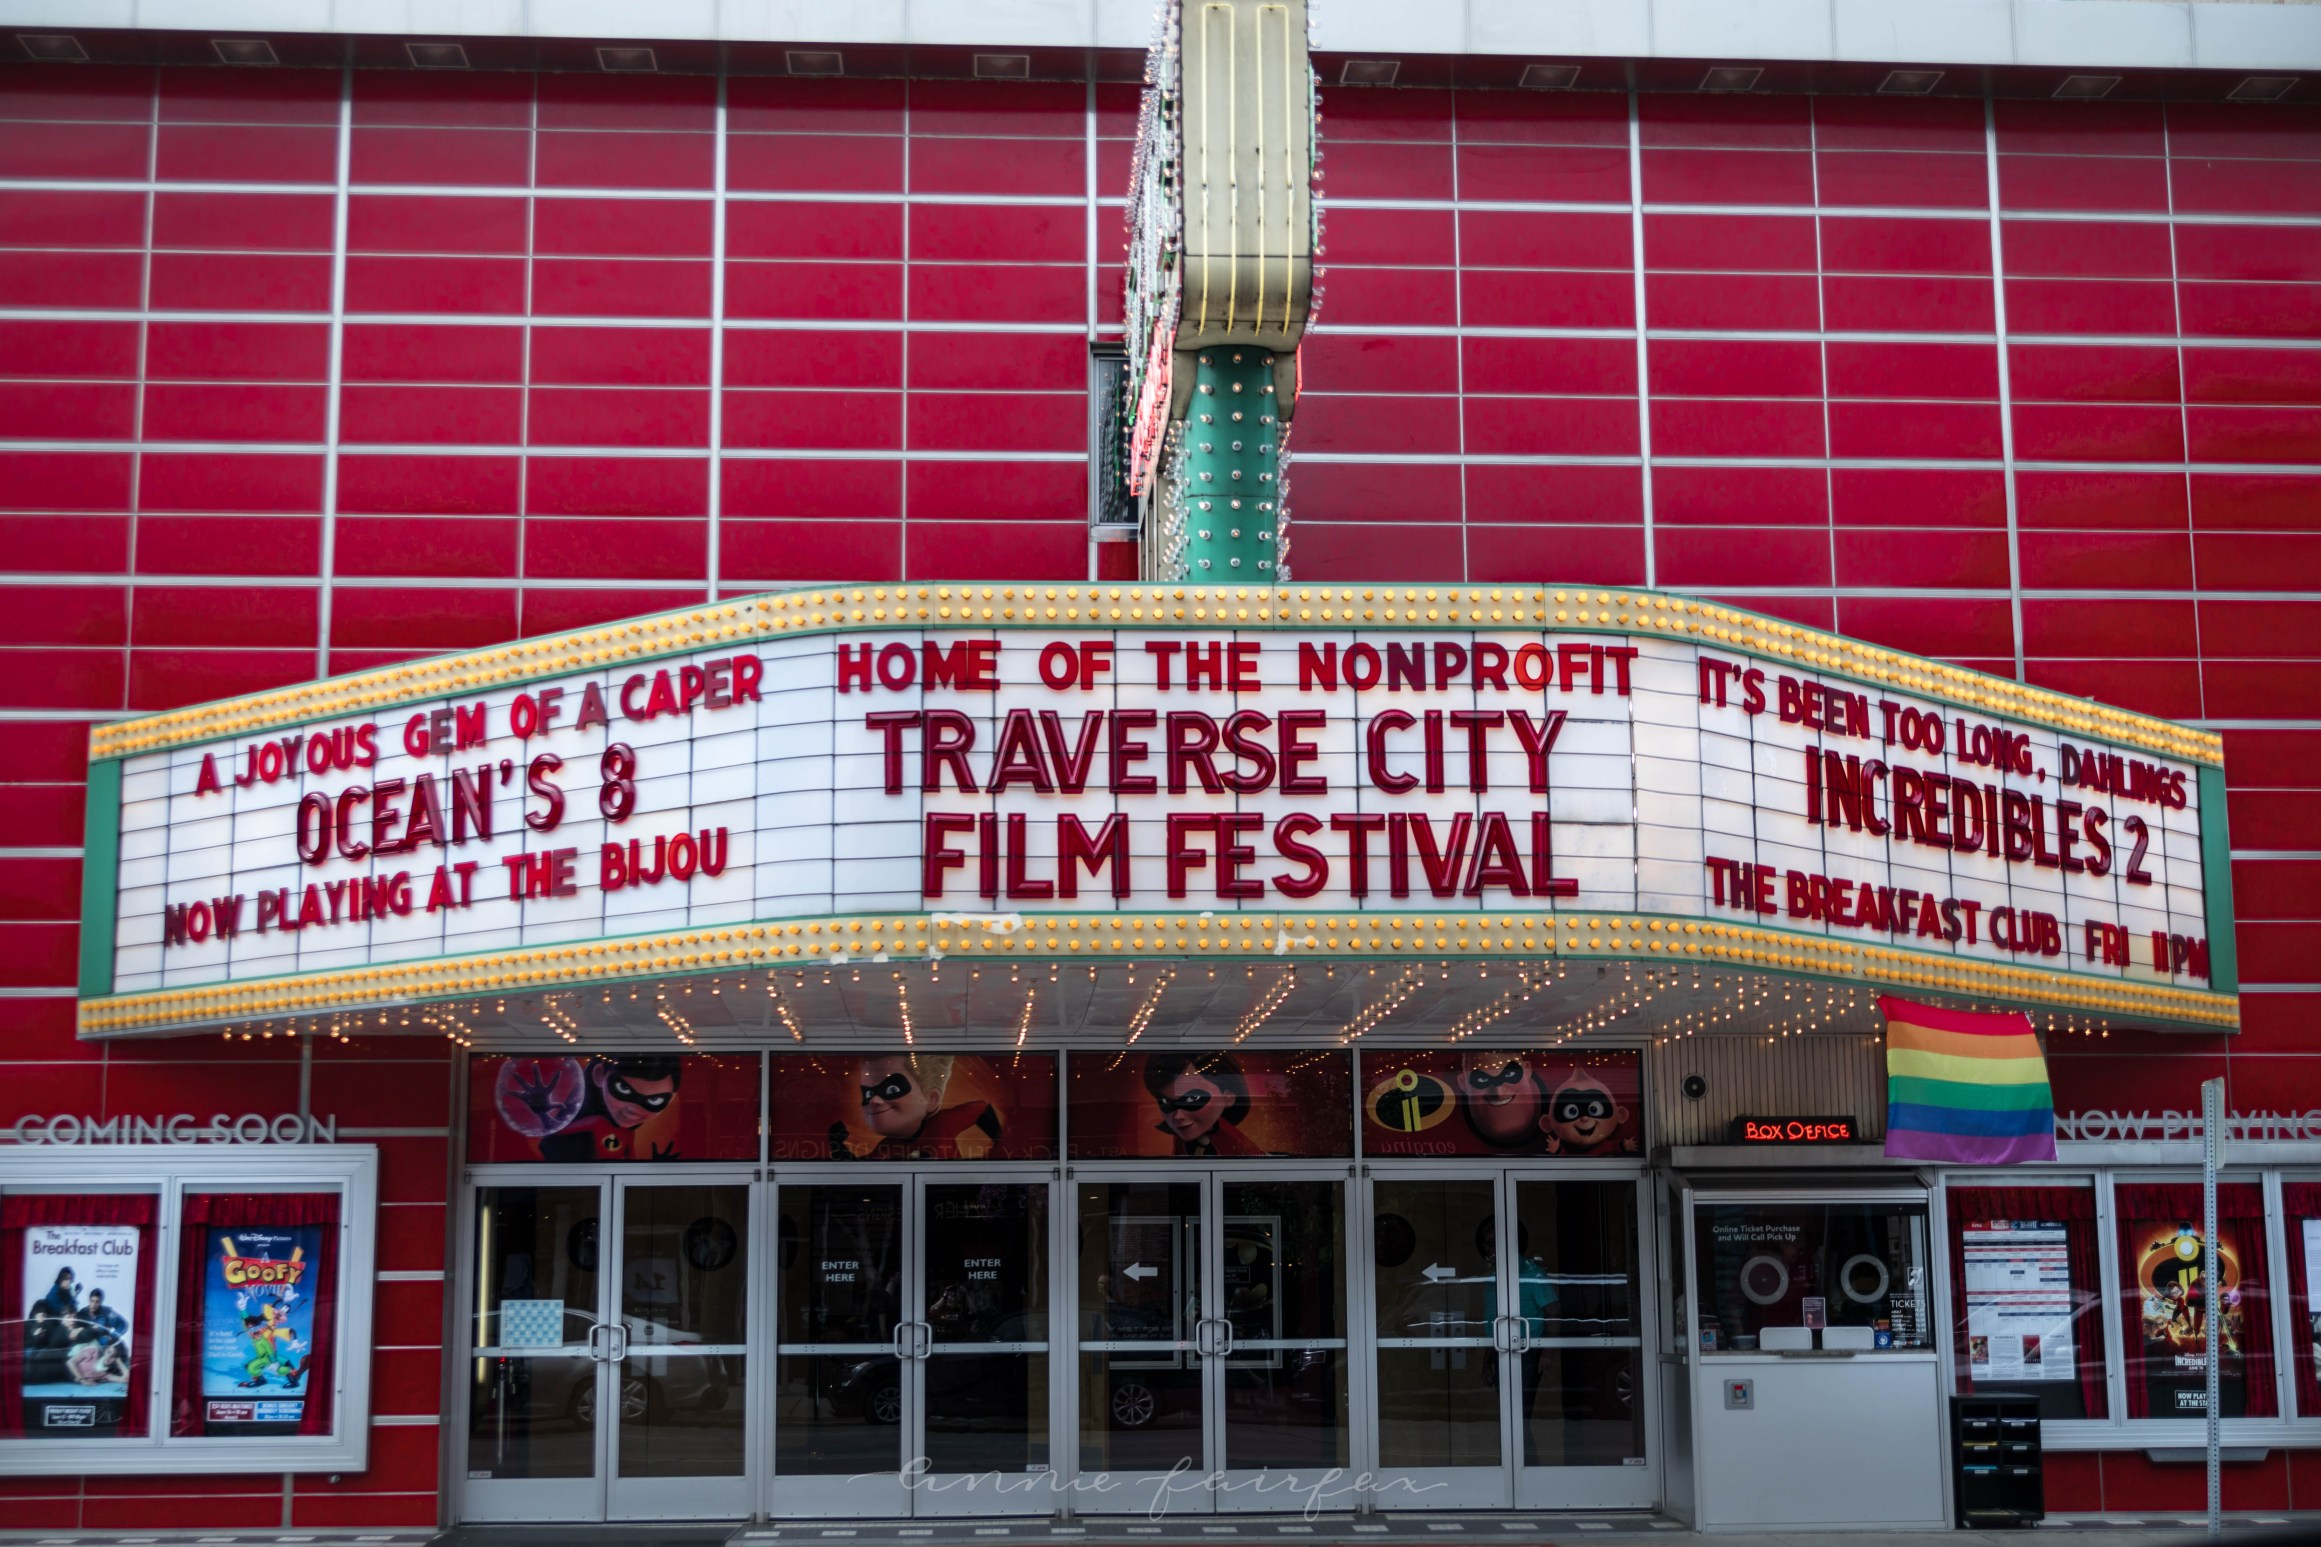 The Complete Traveler's Guide to Traverse City, MI Where to Eat, Where to Stay, What to Do, Day Trips and More Film Festival